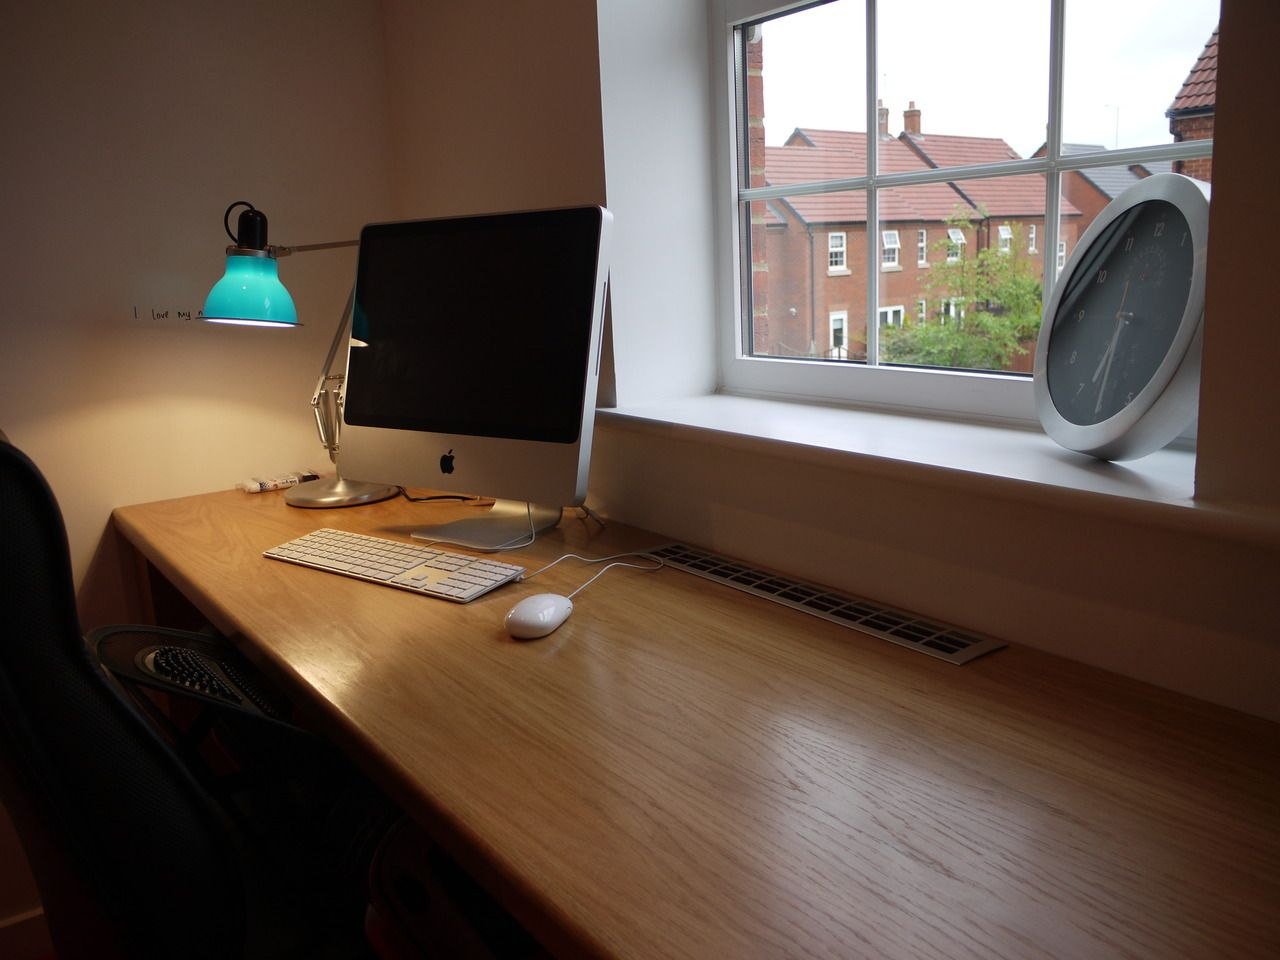 good looking designs of computer table for home. Furniture Good Looking Long Desk Design Inspiration With Beautiful Blue Cup  Lamp And Comfortable Black Office Chair Also Wonderful White Window This desk is submitted by user csouthey Anglepoise lamp Habitat